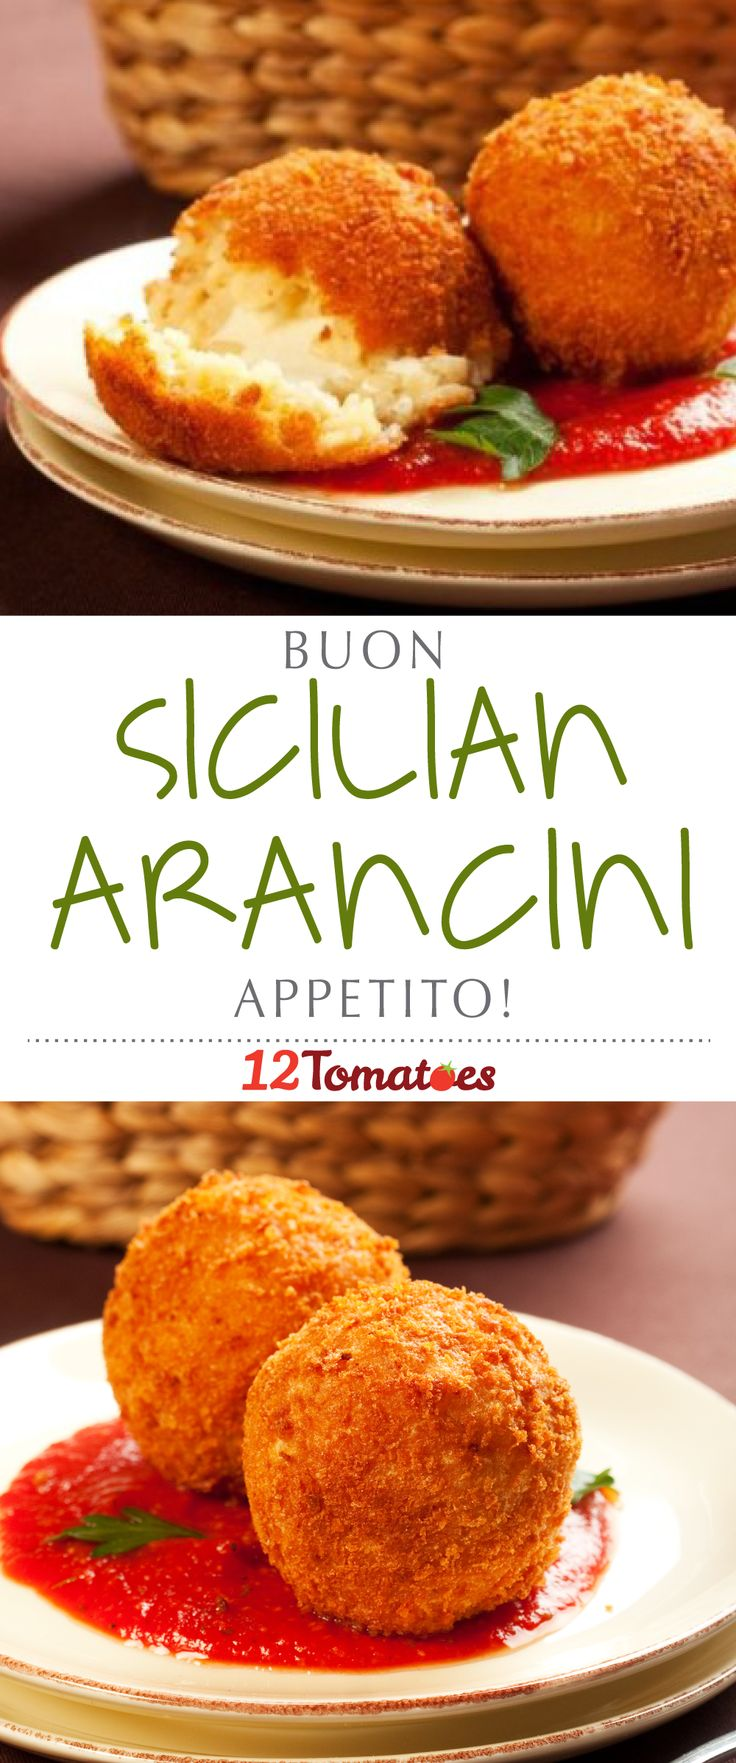 You'll find arancini  sold as street food throughout the Italian peninsula, but they truly belong to Sicily. These decadent balls of fried rice are known as little oranges thanks to their remarkable resemblance to one of the island's other specialities. Arancini are savory treats that shine as elegant appetizers on the dining room table or as an afternoon snack fresh off a food cart. They're just plain delicious.